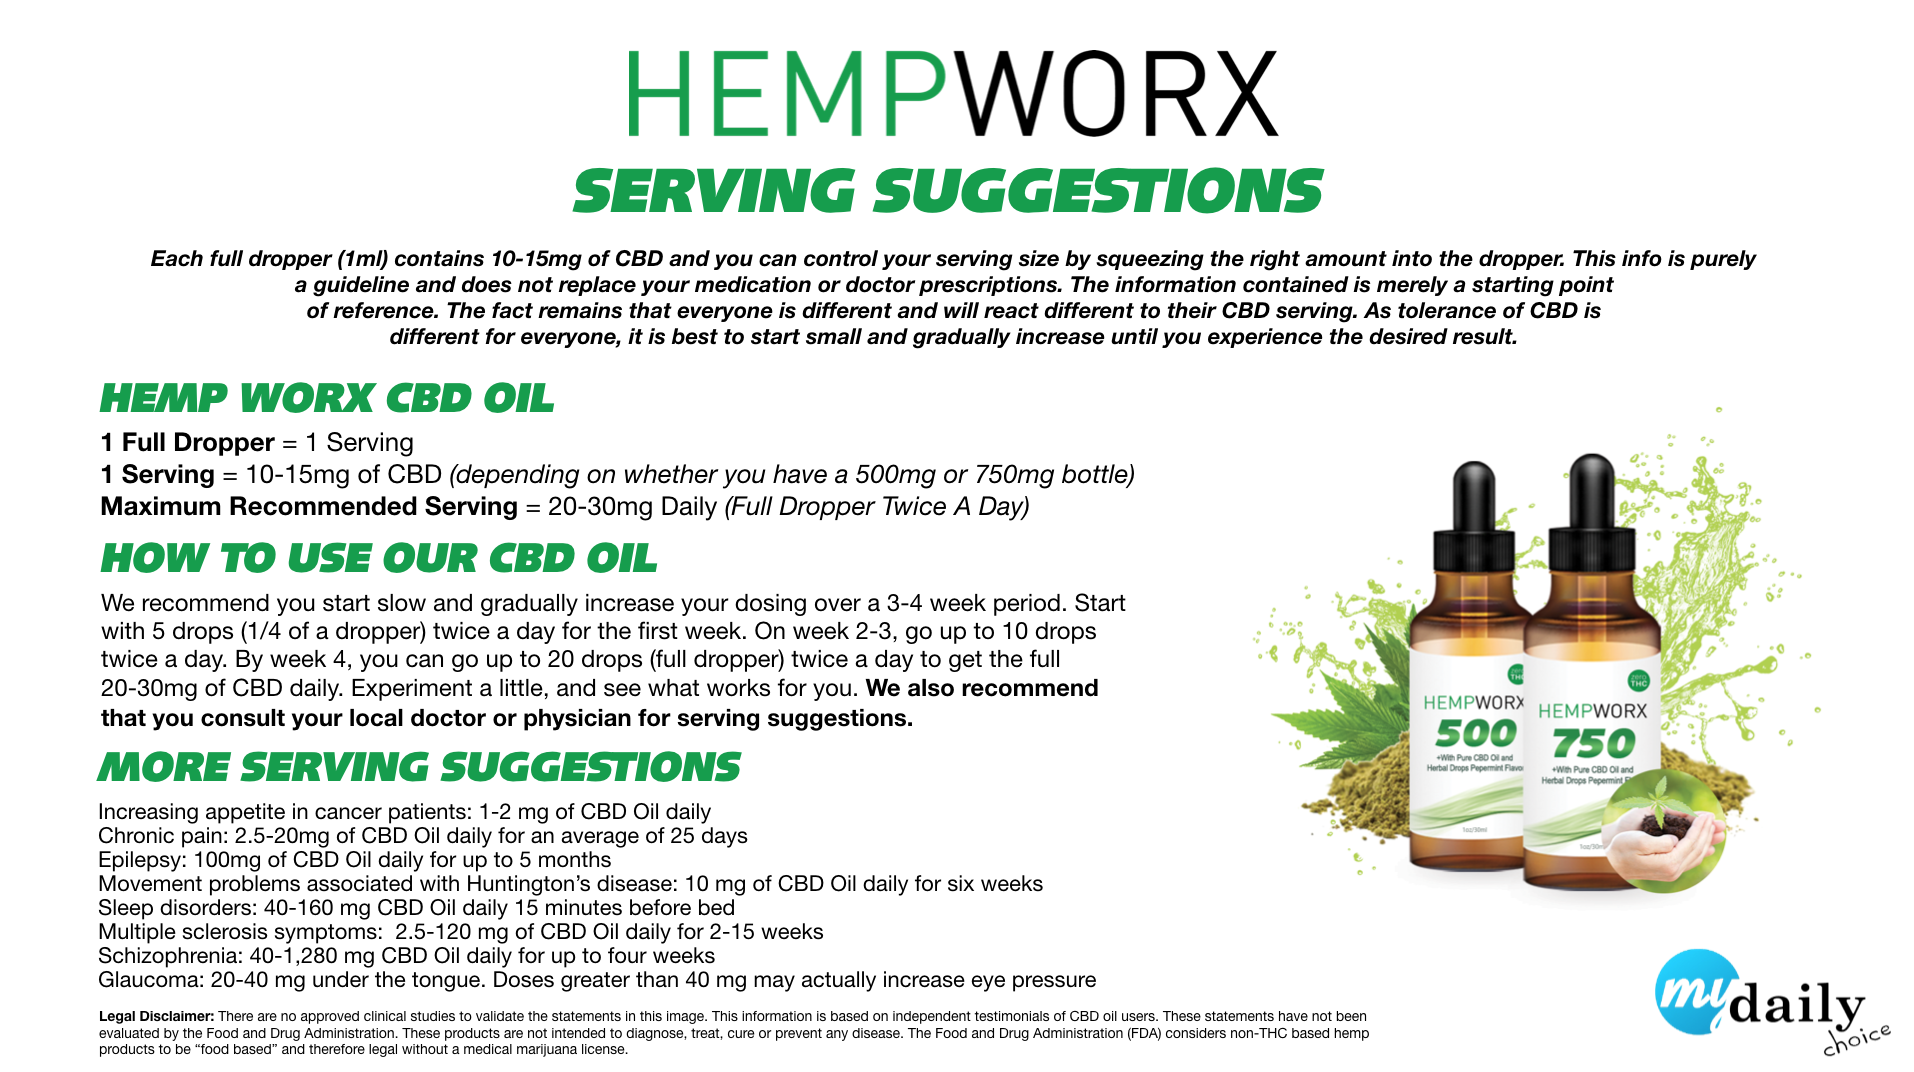 hempworx 750 cbd oil dosage